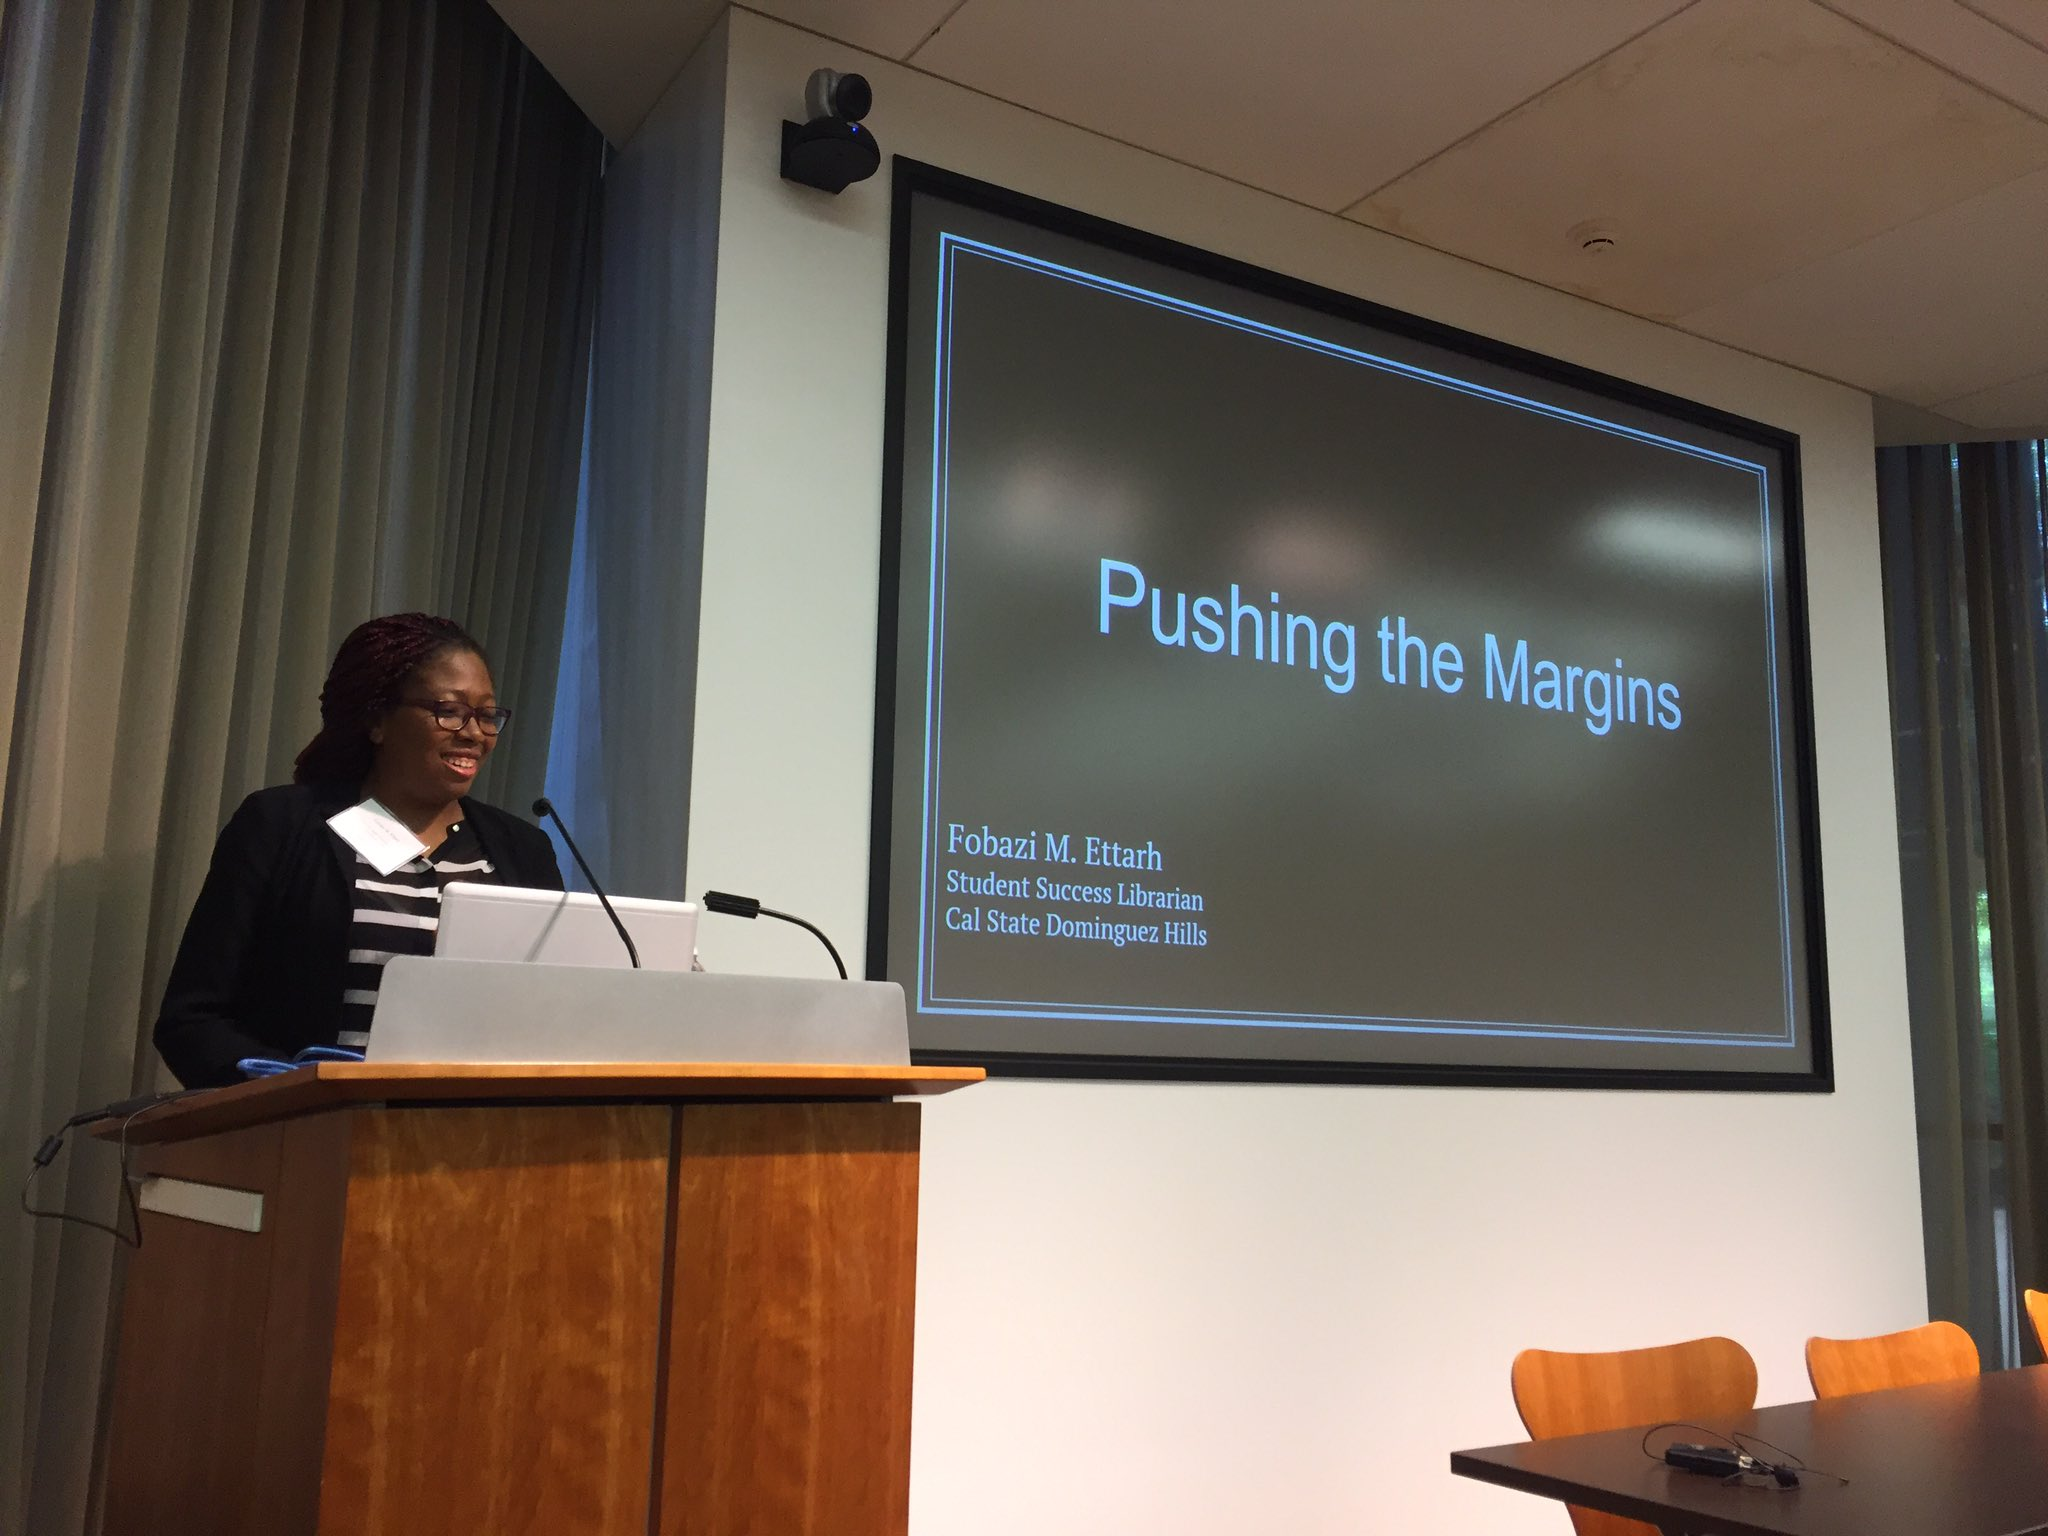 And @Fobettarh is kicking off the Pushing the Margins Symposium!! #WOCinLIS https://t.co/m9VHM4Ofso